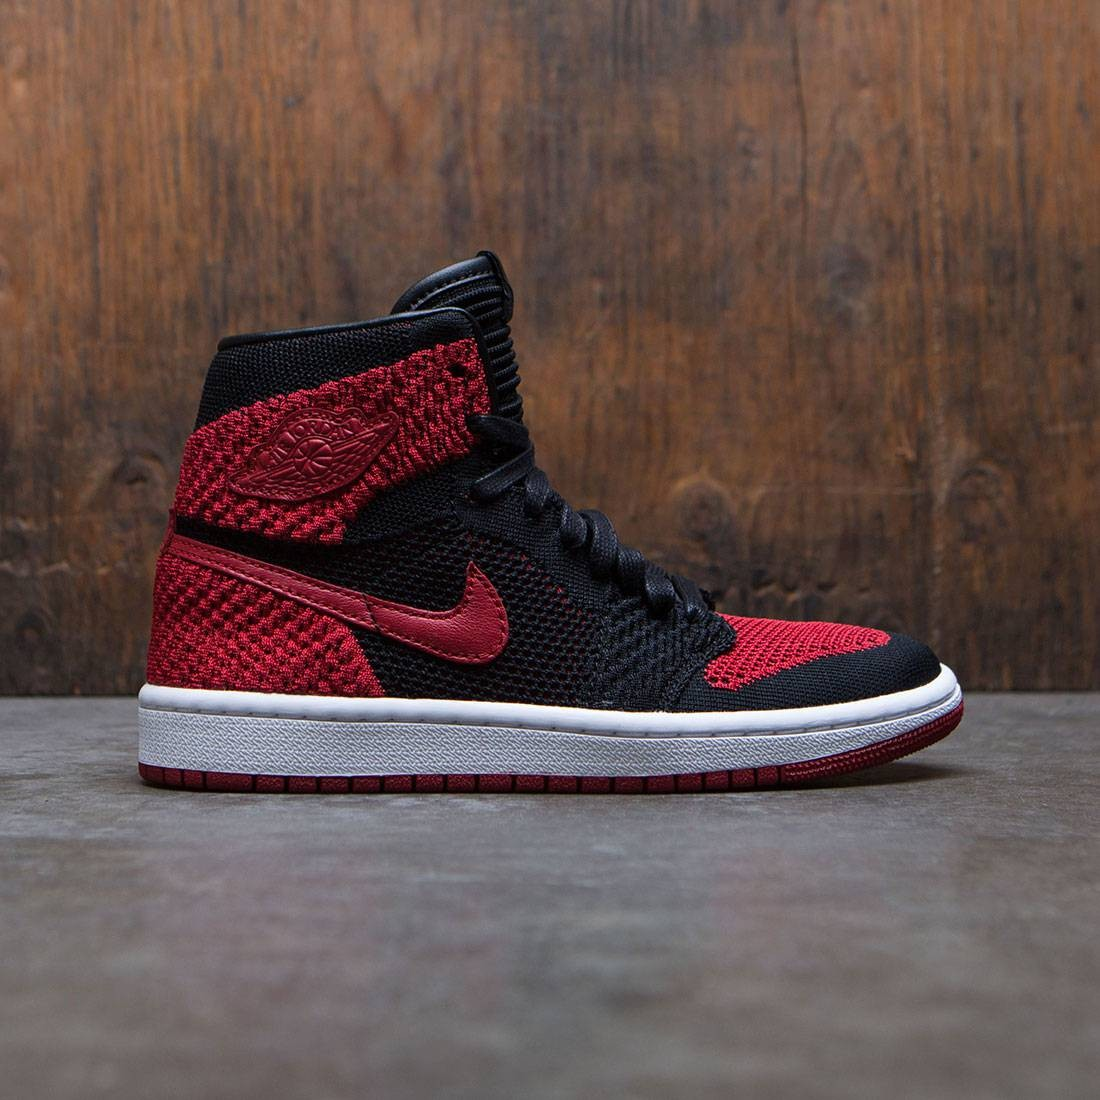 72d632e7daa233 jordan big kids air jordan 1 retro high flyknit gs black varsity red white